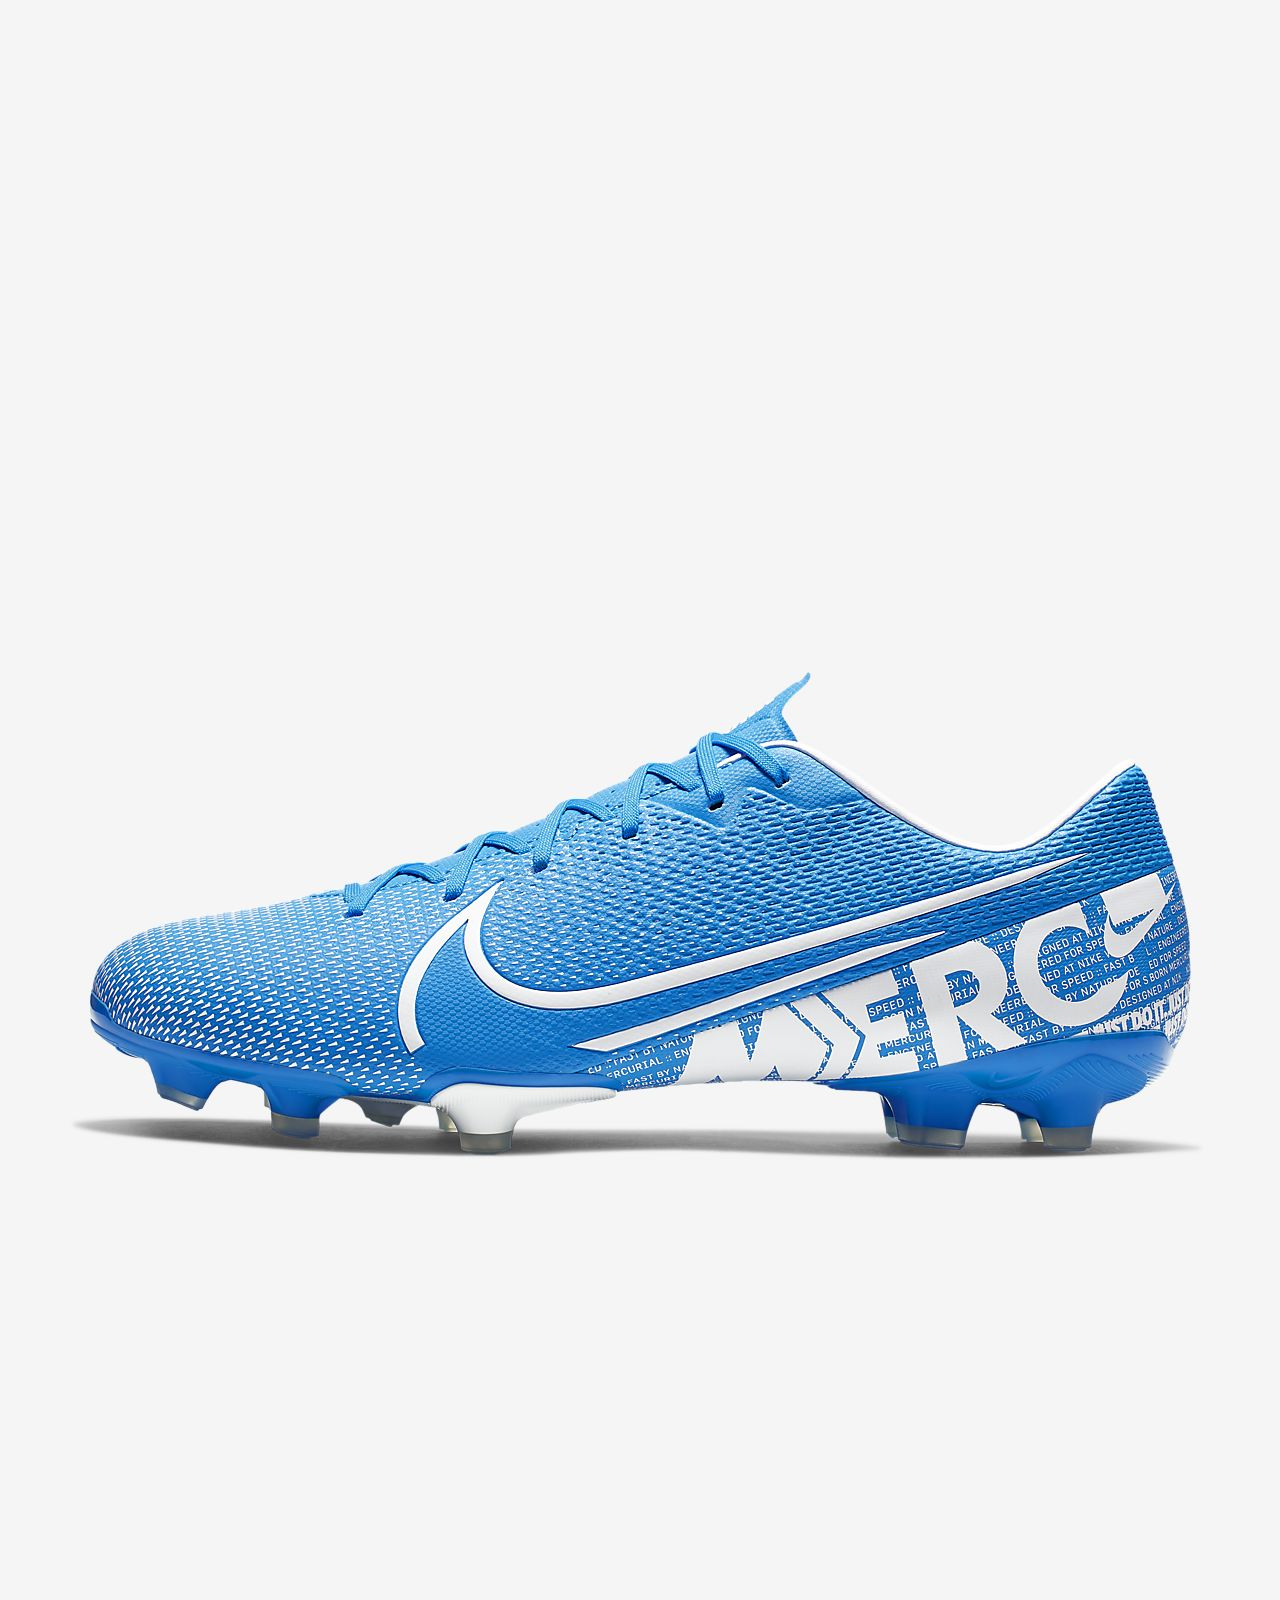 Chaussure de football multi-surfaces à crampons Nike Mercurial Vapor 13 Academy MG